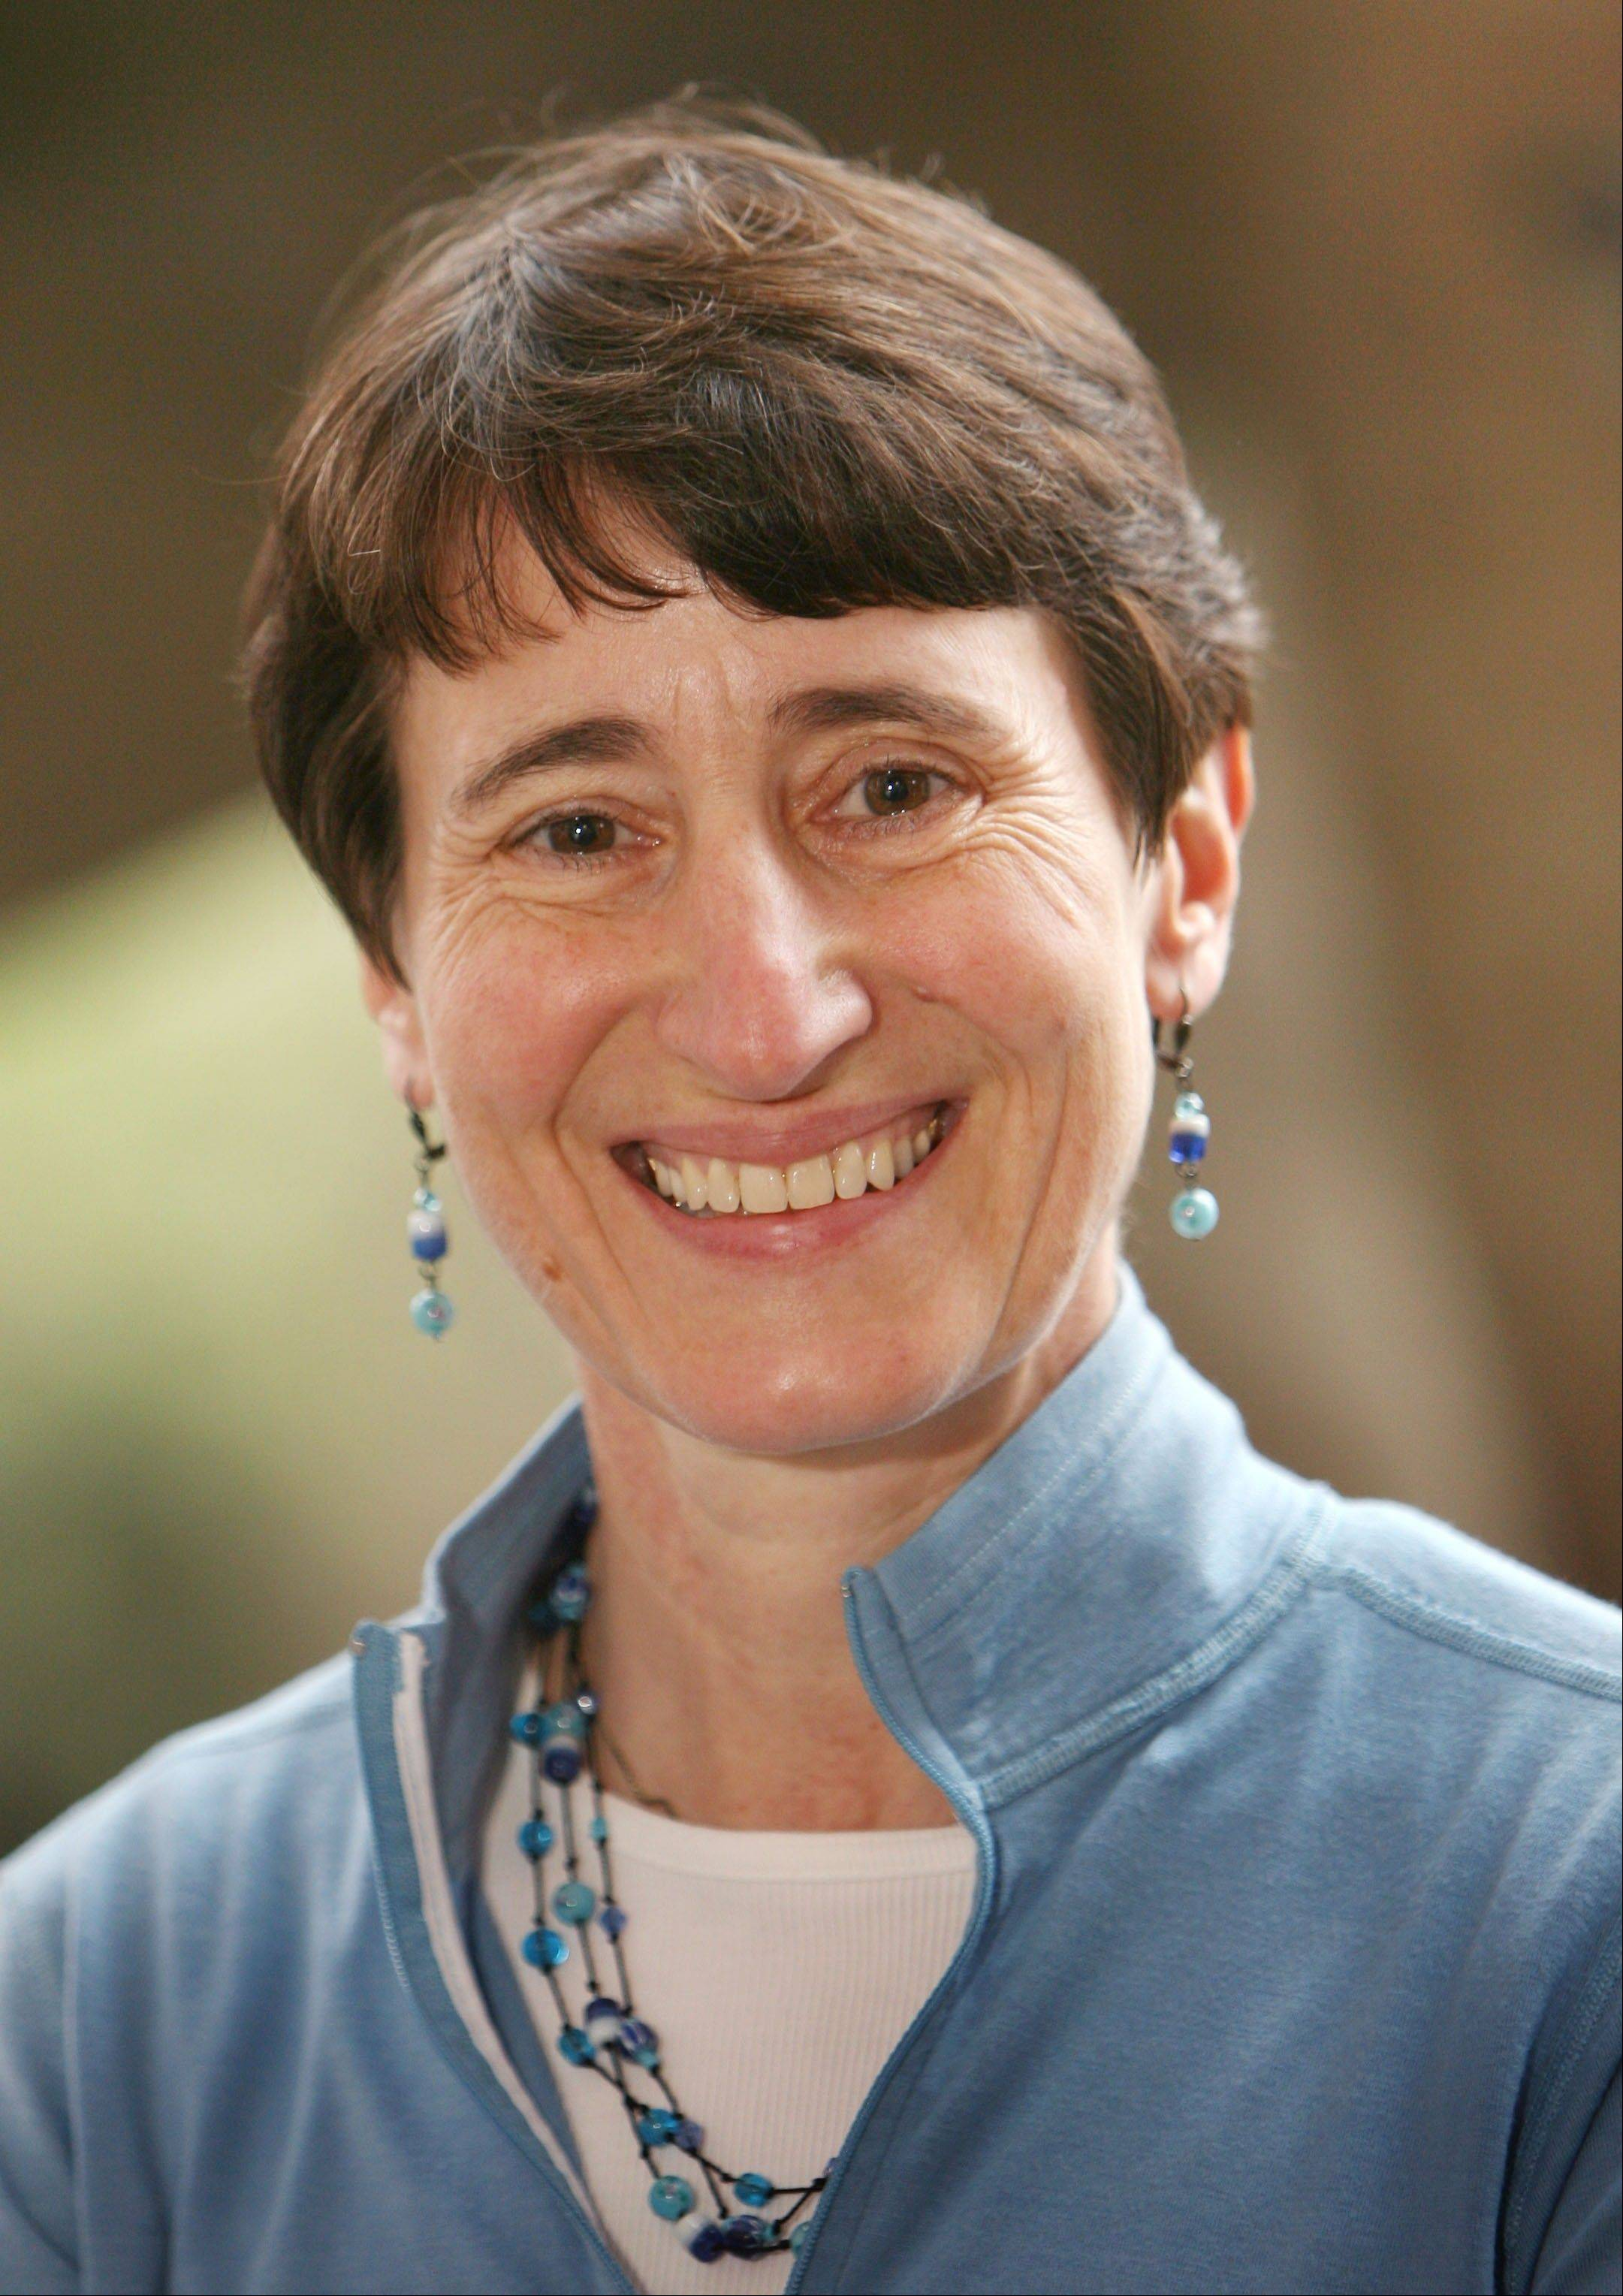 Recreational Equipment, Inc. (REI) CEO Sally Jewell. An administration official says President Obama has plans to announce the nomination of Jewell to secretary of Interior.